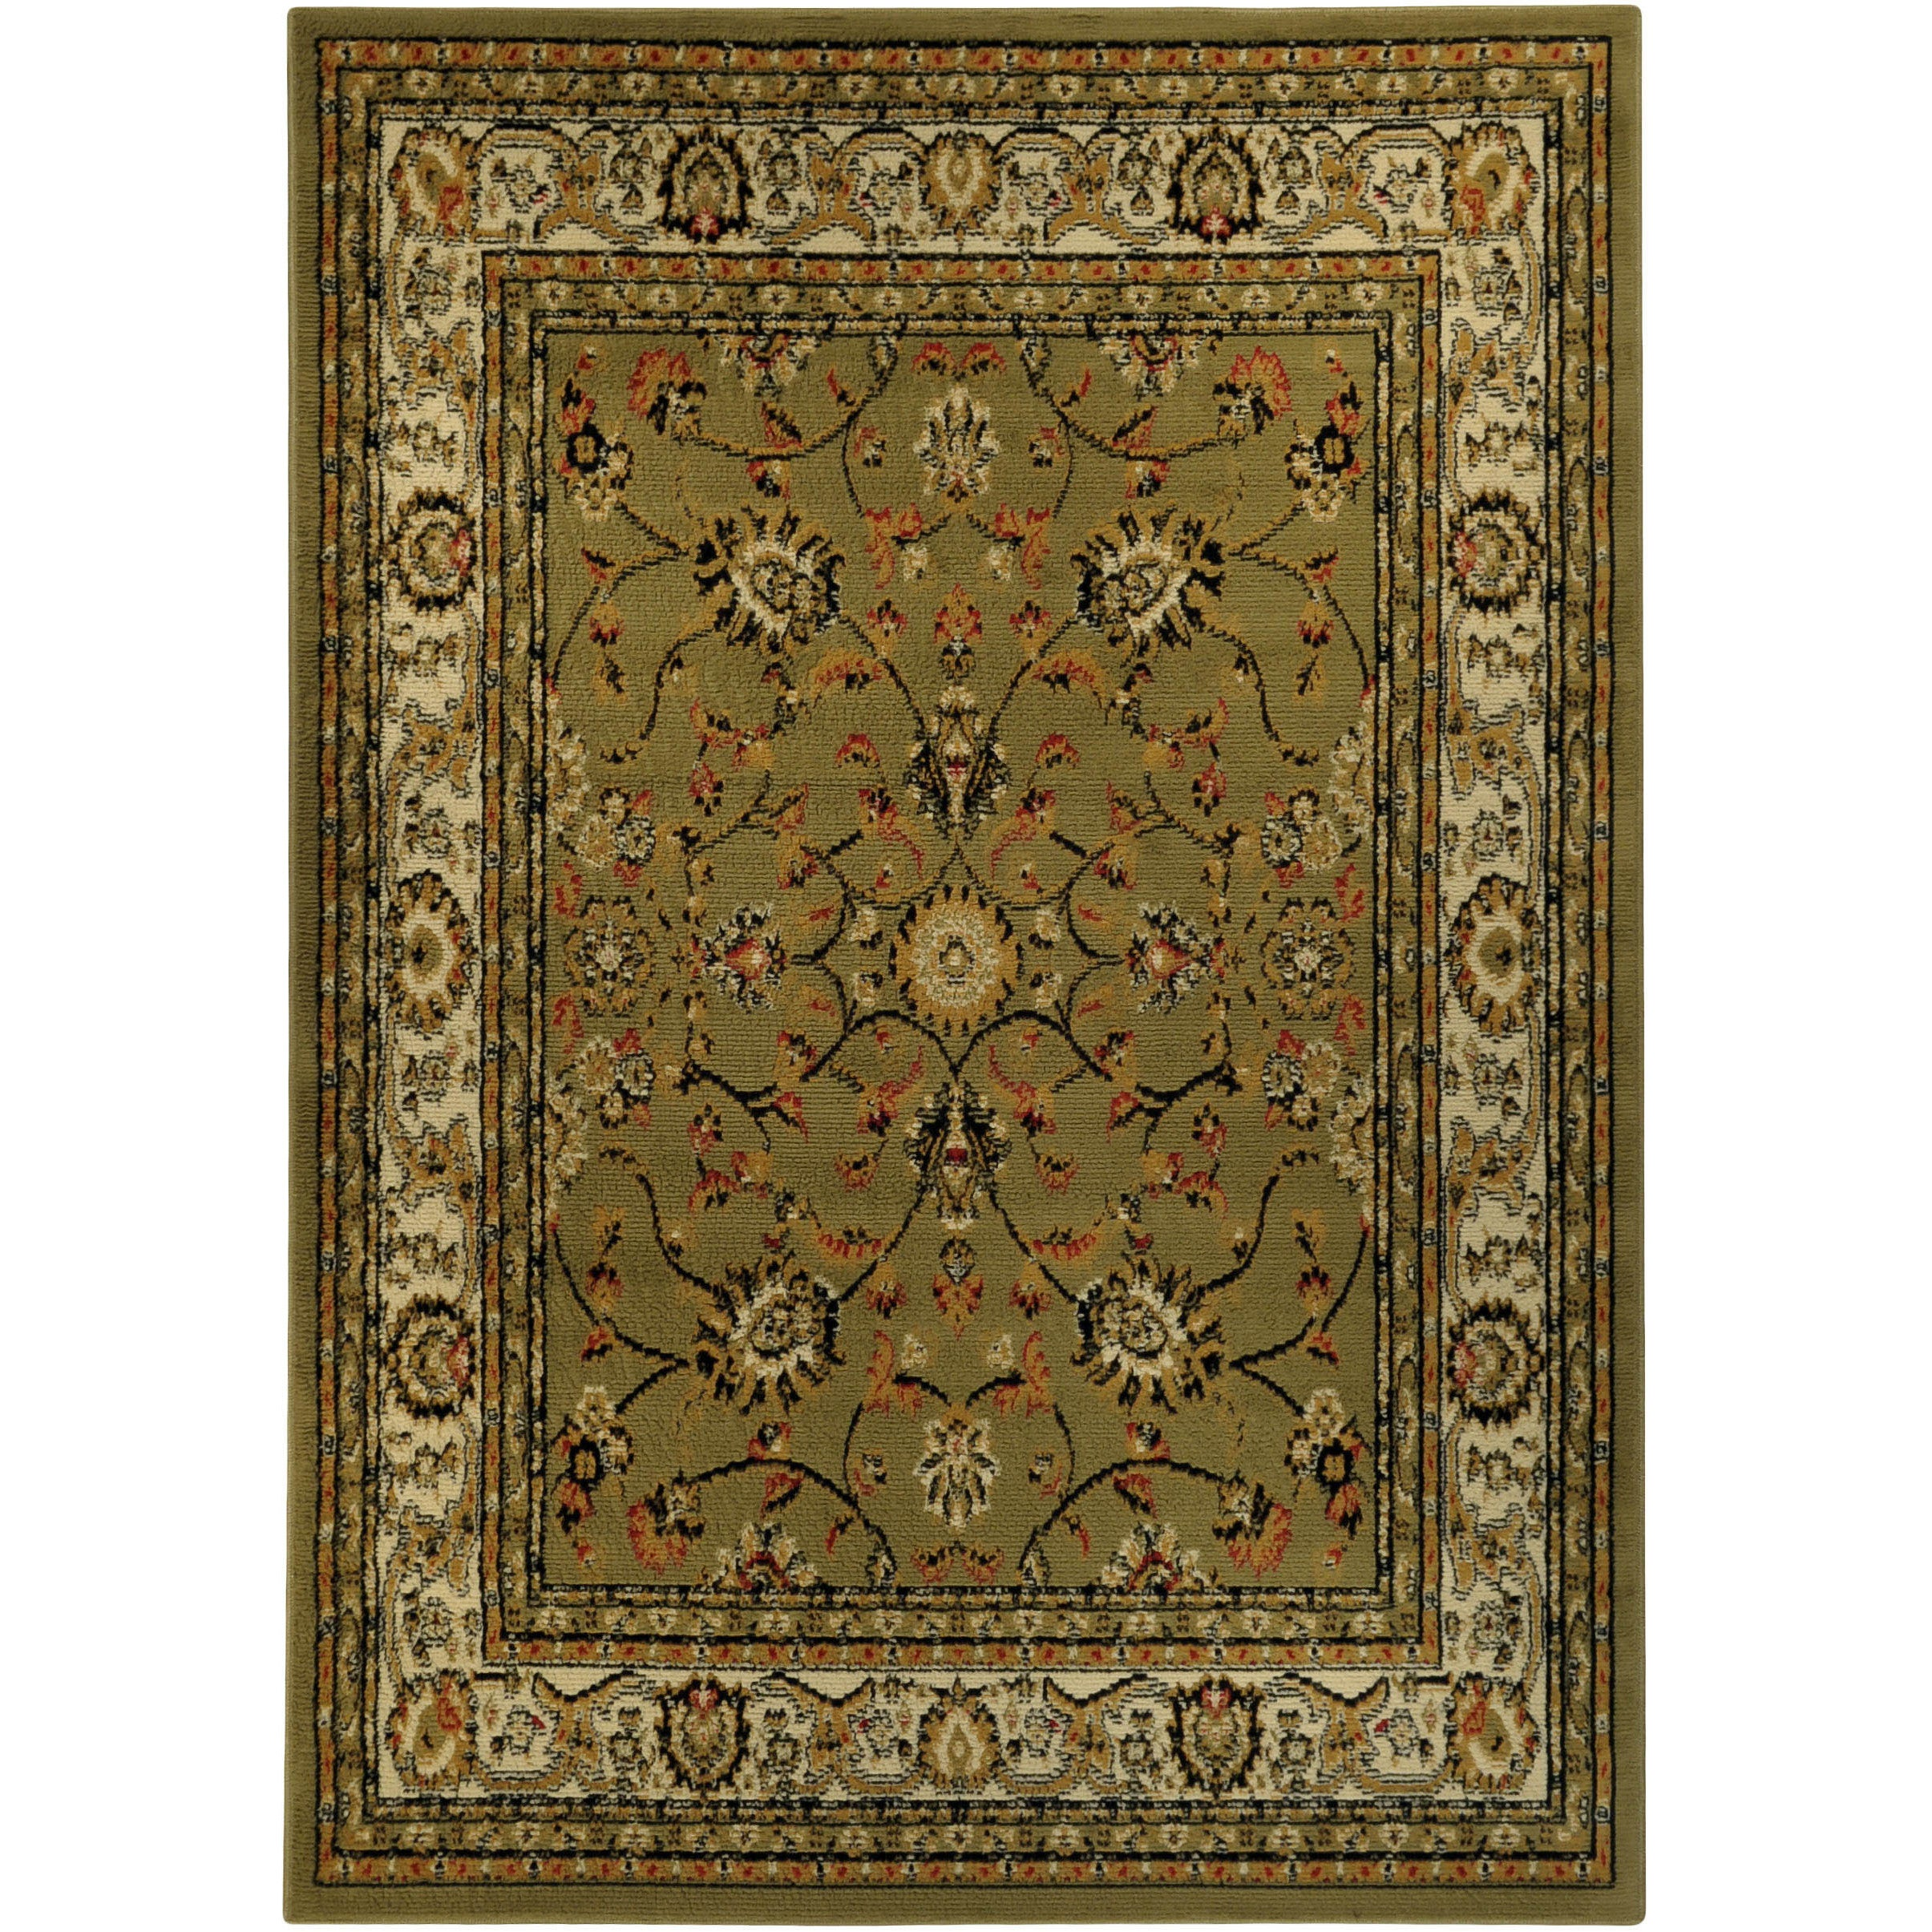 Discount 8x11 Area Rugs: Floral Garden Traditional Sage Green Area Rug (8'2 X 9'10